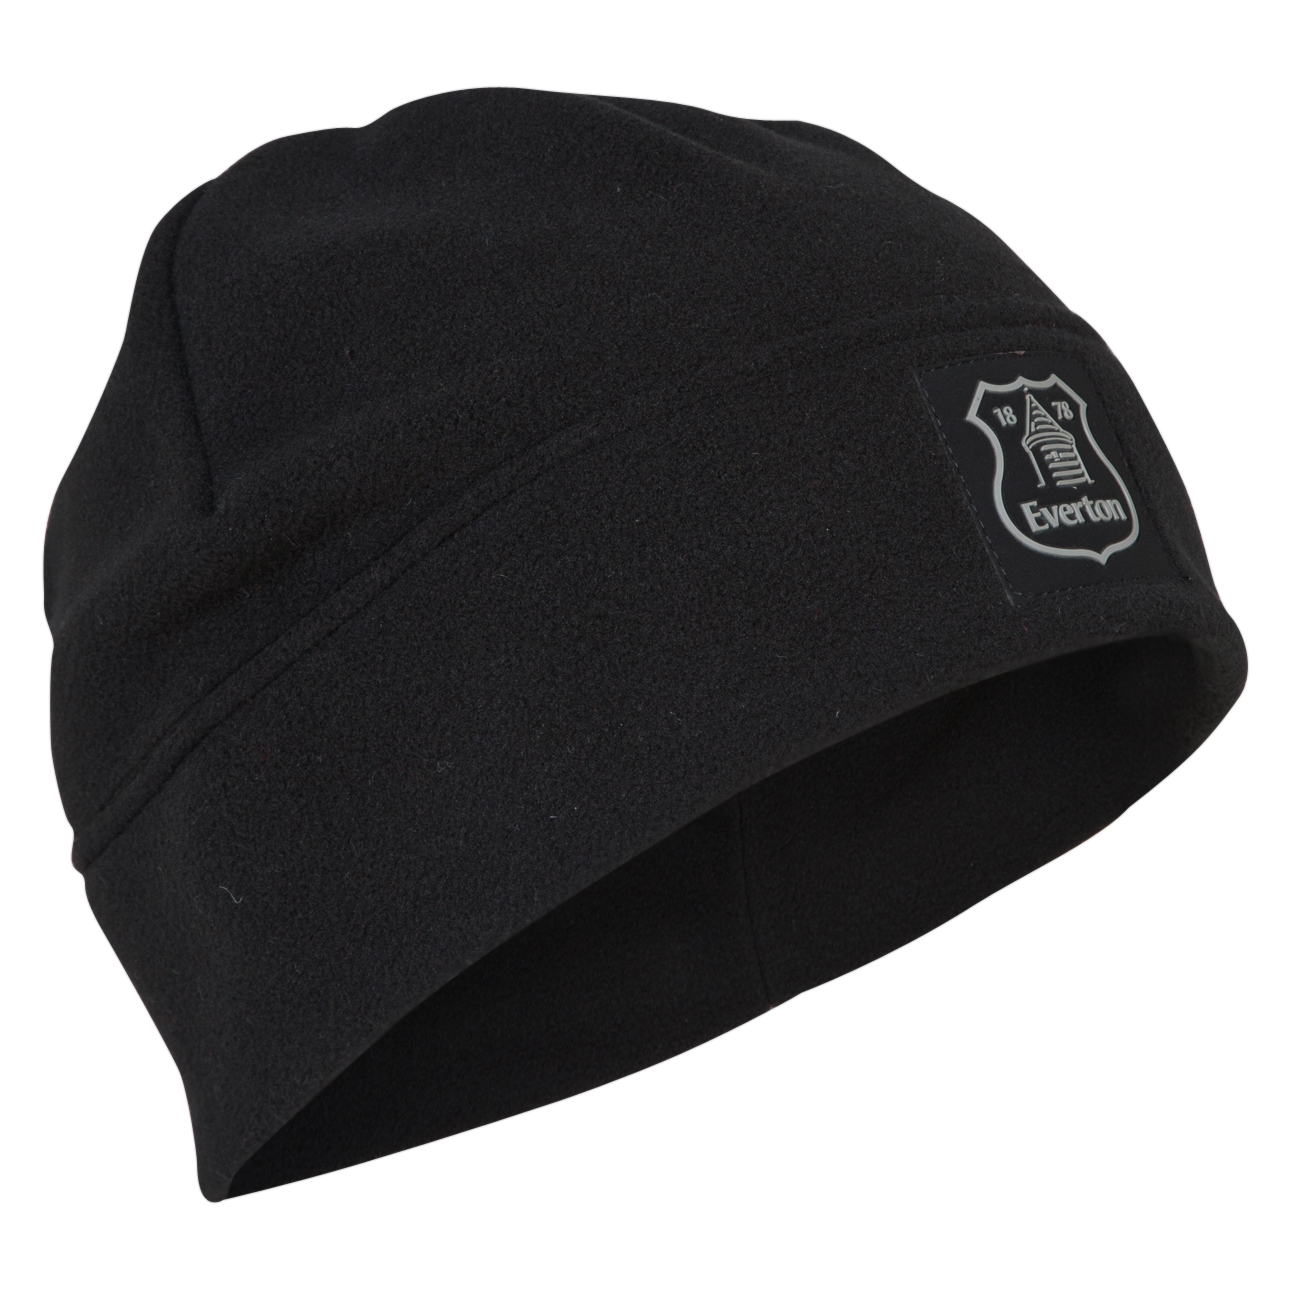 Everton Performance Fell Hat Black